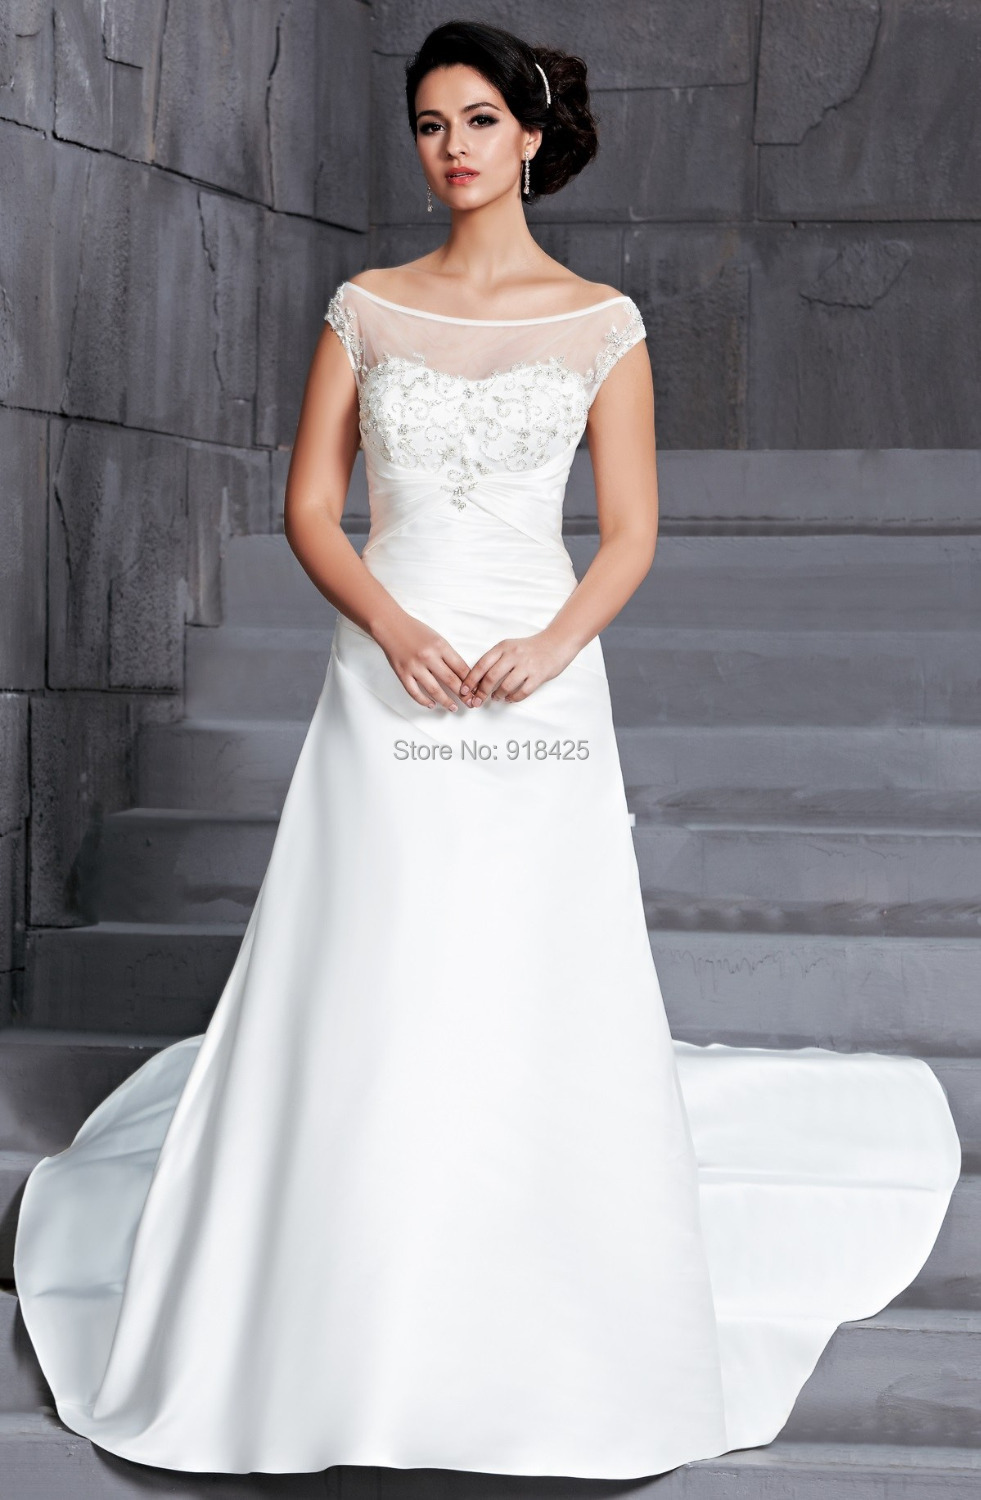 Modern Western A Line Satin Wedding Dresses Cap Sleeves Cheap Bridal Gown Embroidered Illusion Neckline Simple MG270 In From Weddings